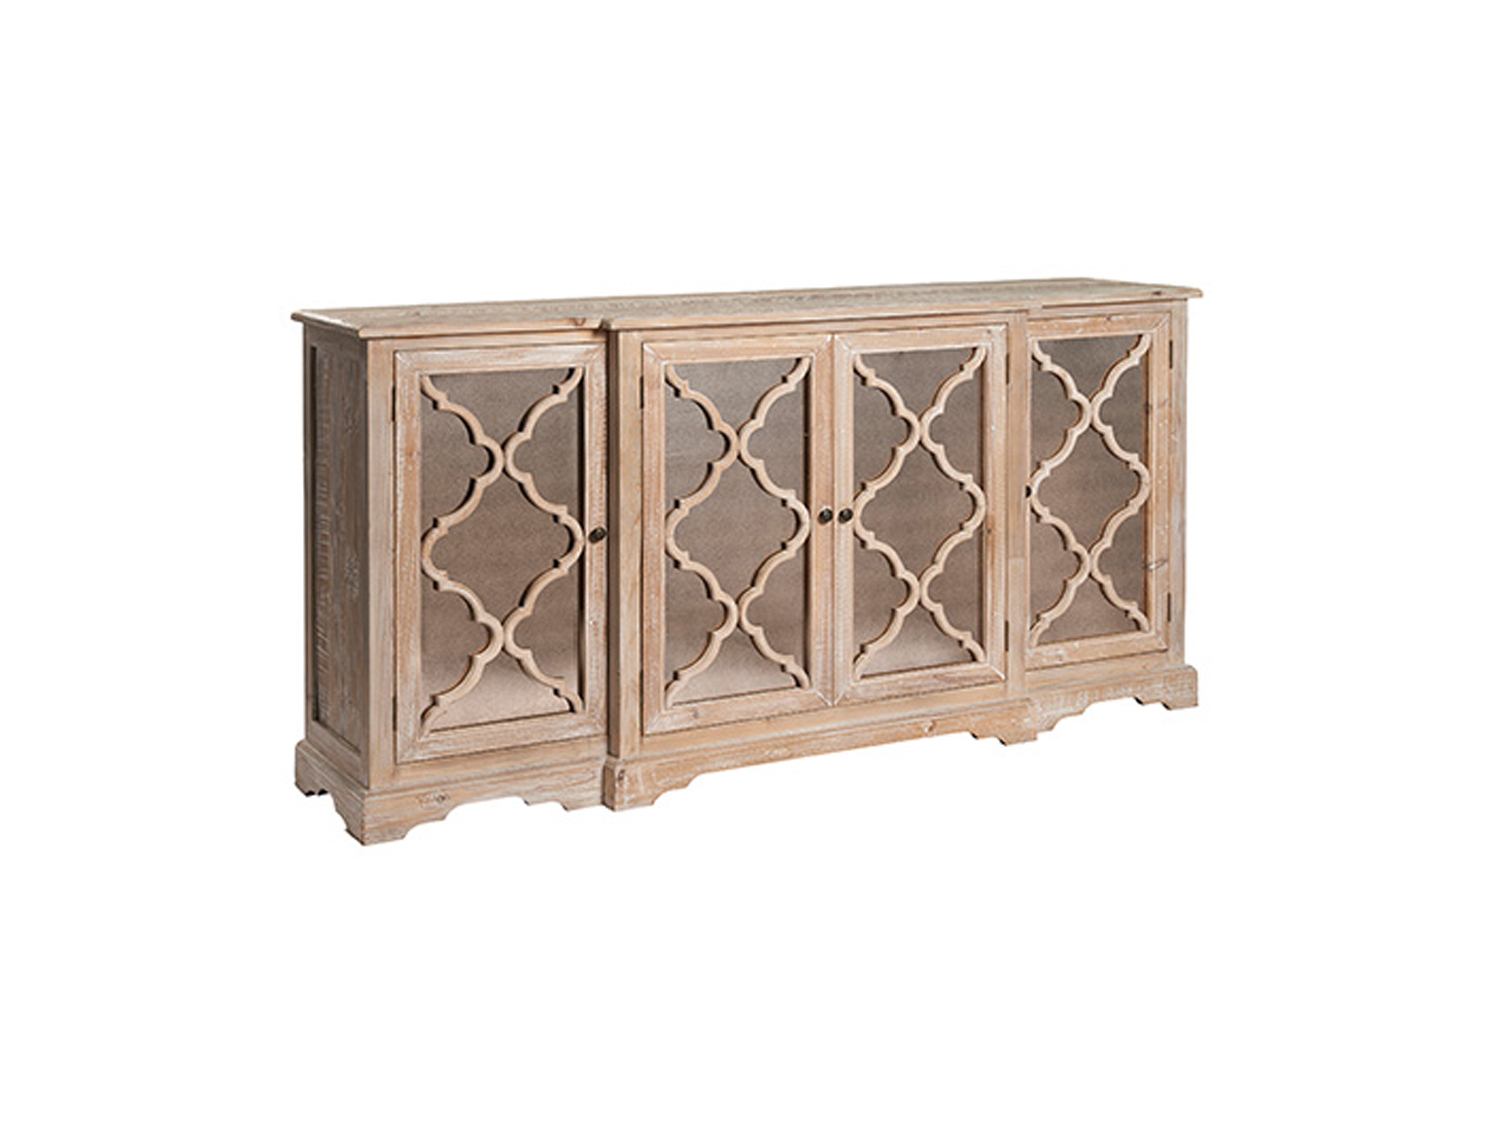 Acepello Lowery Four Door Sideboard From Dansk Intended For Ruskin Sideboards (View 10 of 20)